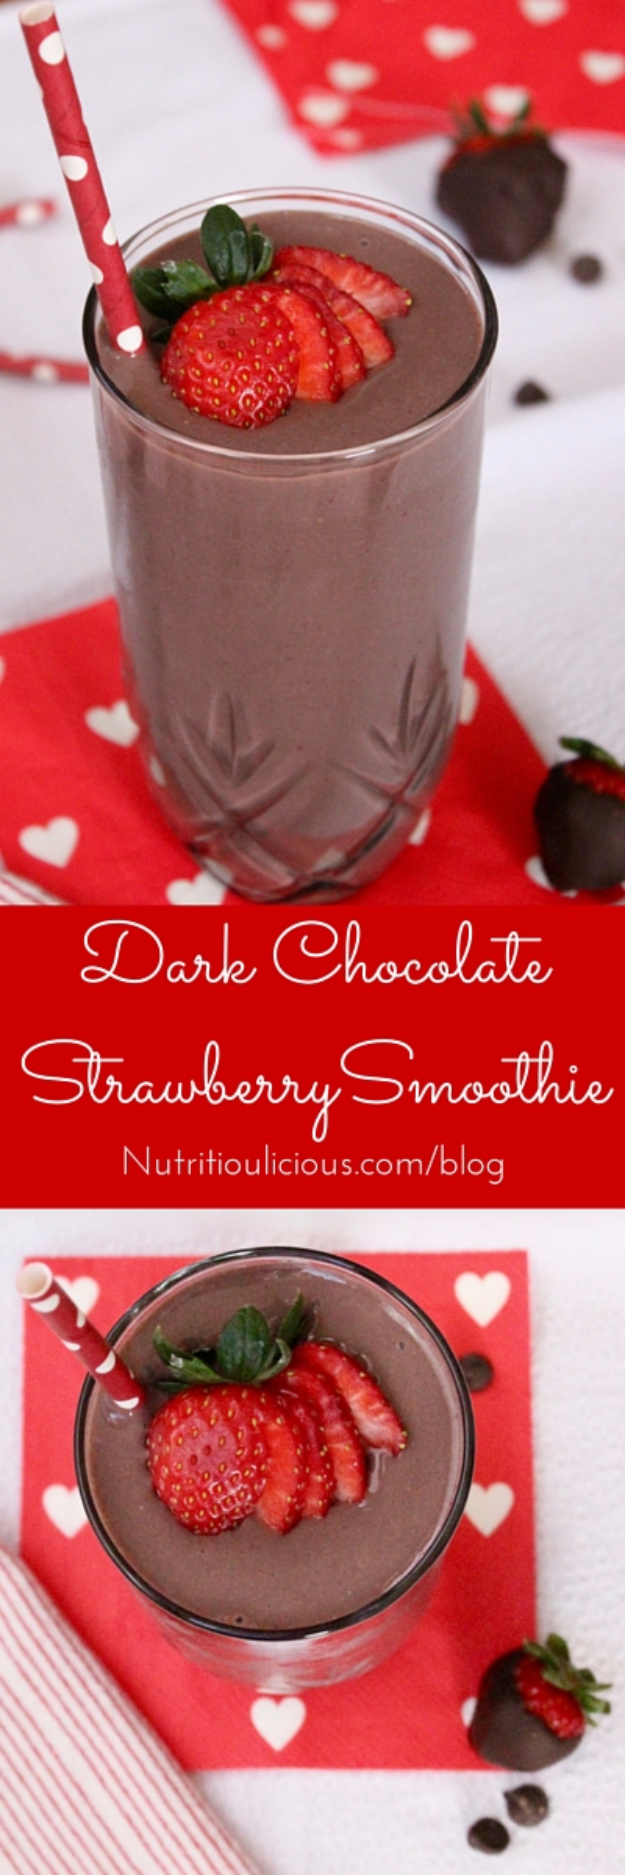 Healthy Smoothie Recipes - Dark Chocolate Strawberry Smoothie - Easy ideas perfect for breakfast, energy. Low calorie and high protein recipes for weightloss and to lose weight. Simple homemade recipe ideas that kids love. Quick EASY morning recipes before work and school, after workout #smoothies #healthy #smoothie #healthyrecipes #recipes